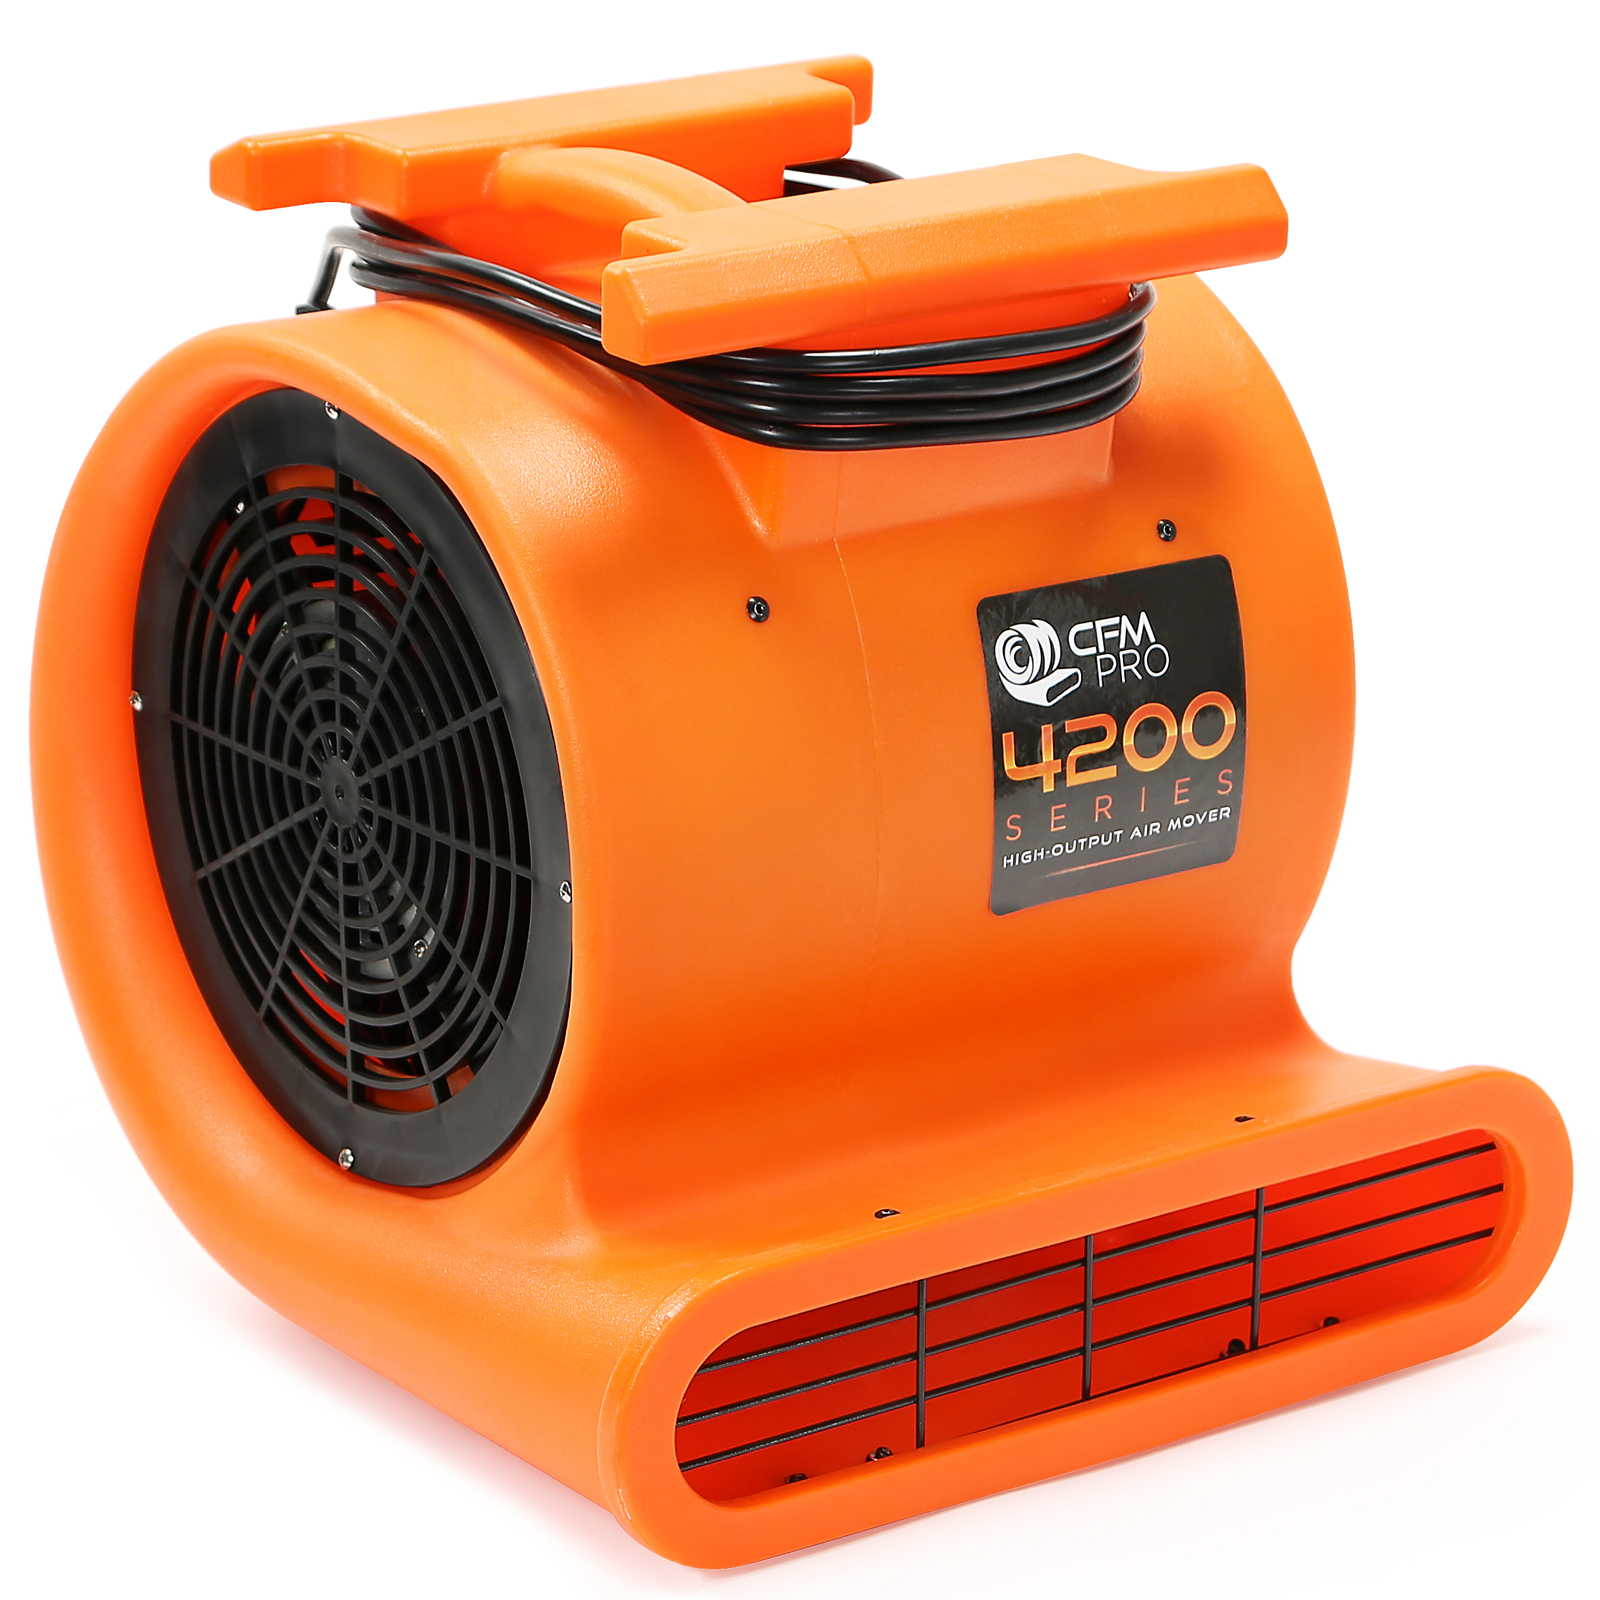 CFM PRO Air Mover & Carpet Dryer Blower Fan - 4,200 Series